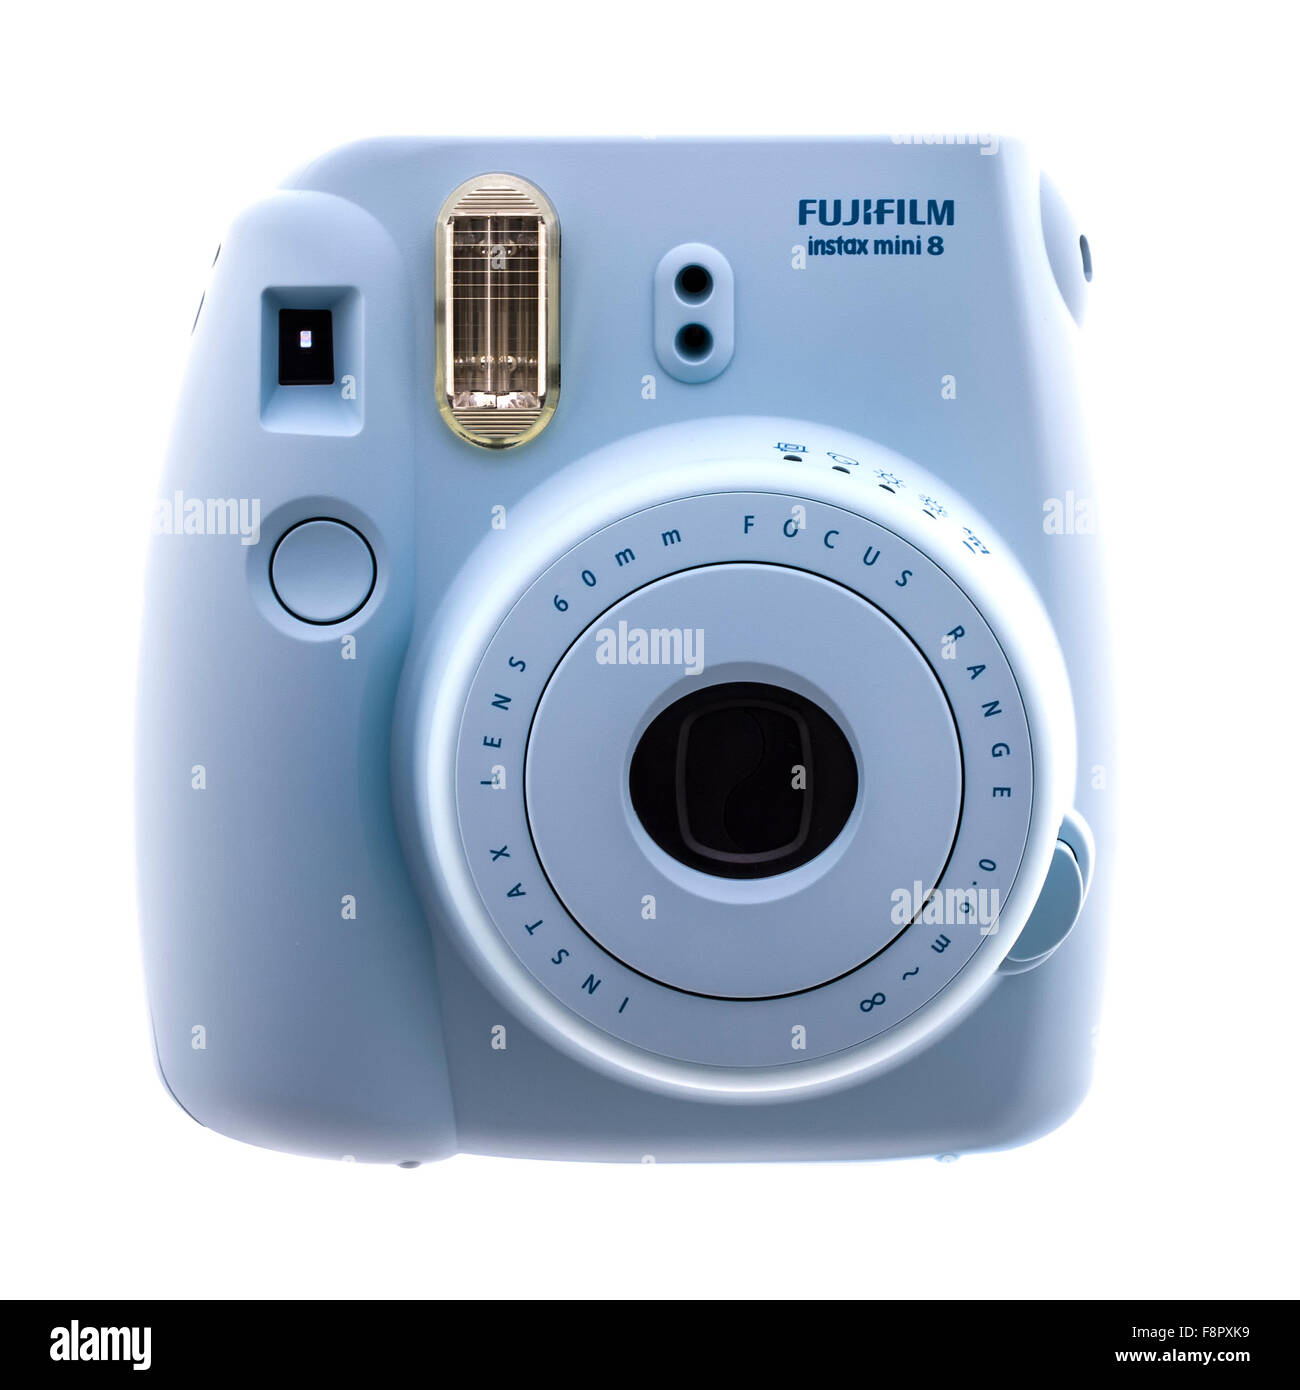 Fuji Film Instax Mini 8 Camera on a White Background - Stock Image